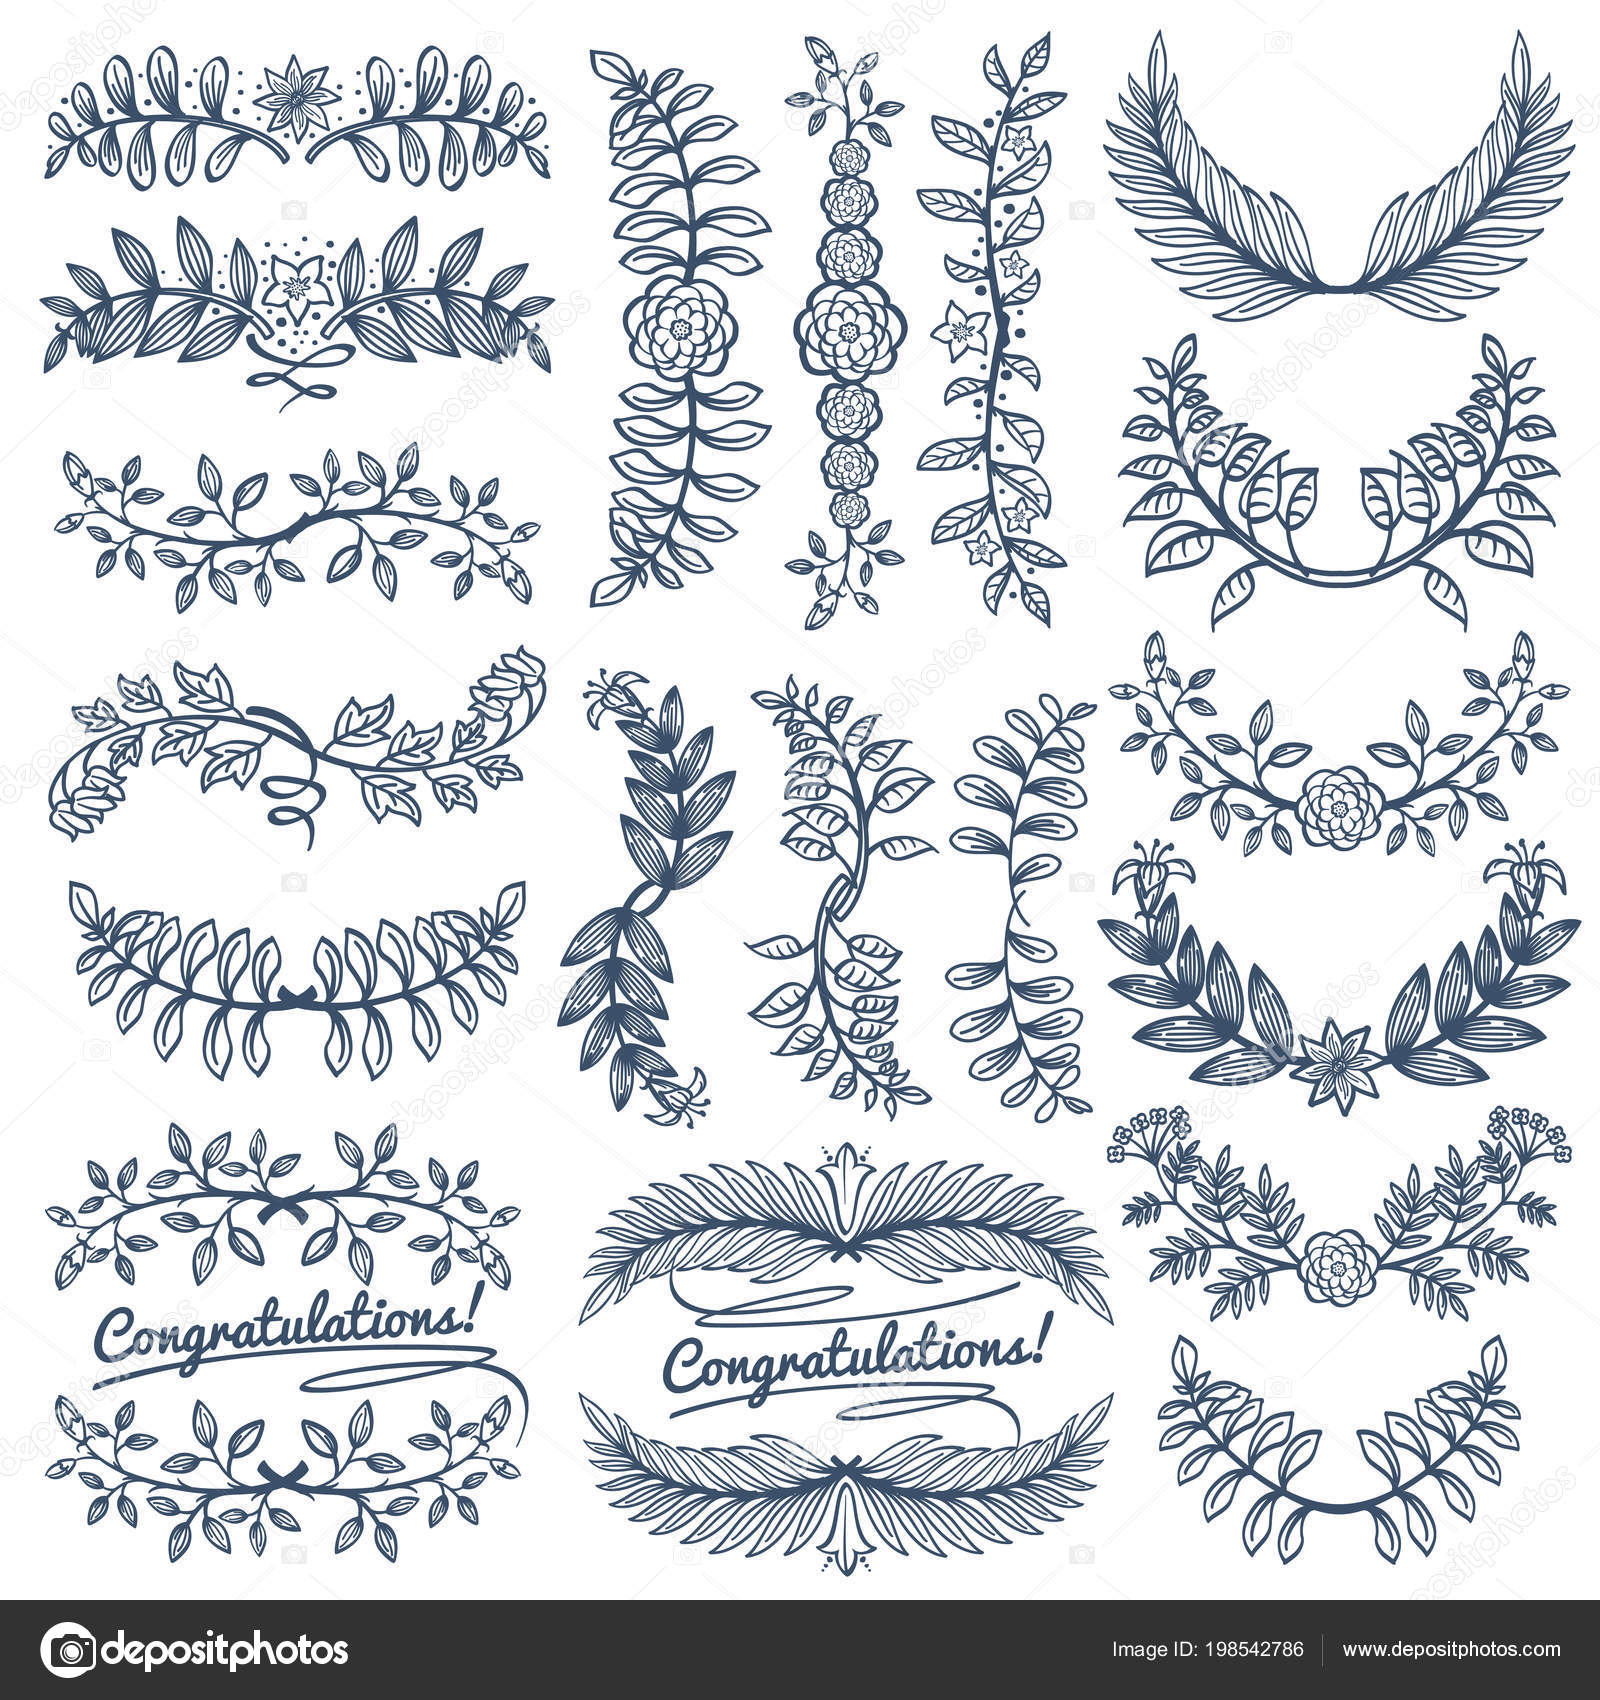 Vintage rustic decoration wedding celebration design sketch empty vintage rustic decoration for wedding celebration design sketch empty wreath and border frames vector set decoration wreath frame illustration of flower junglespirit Images